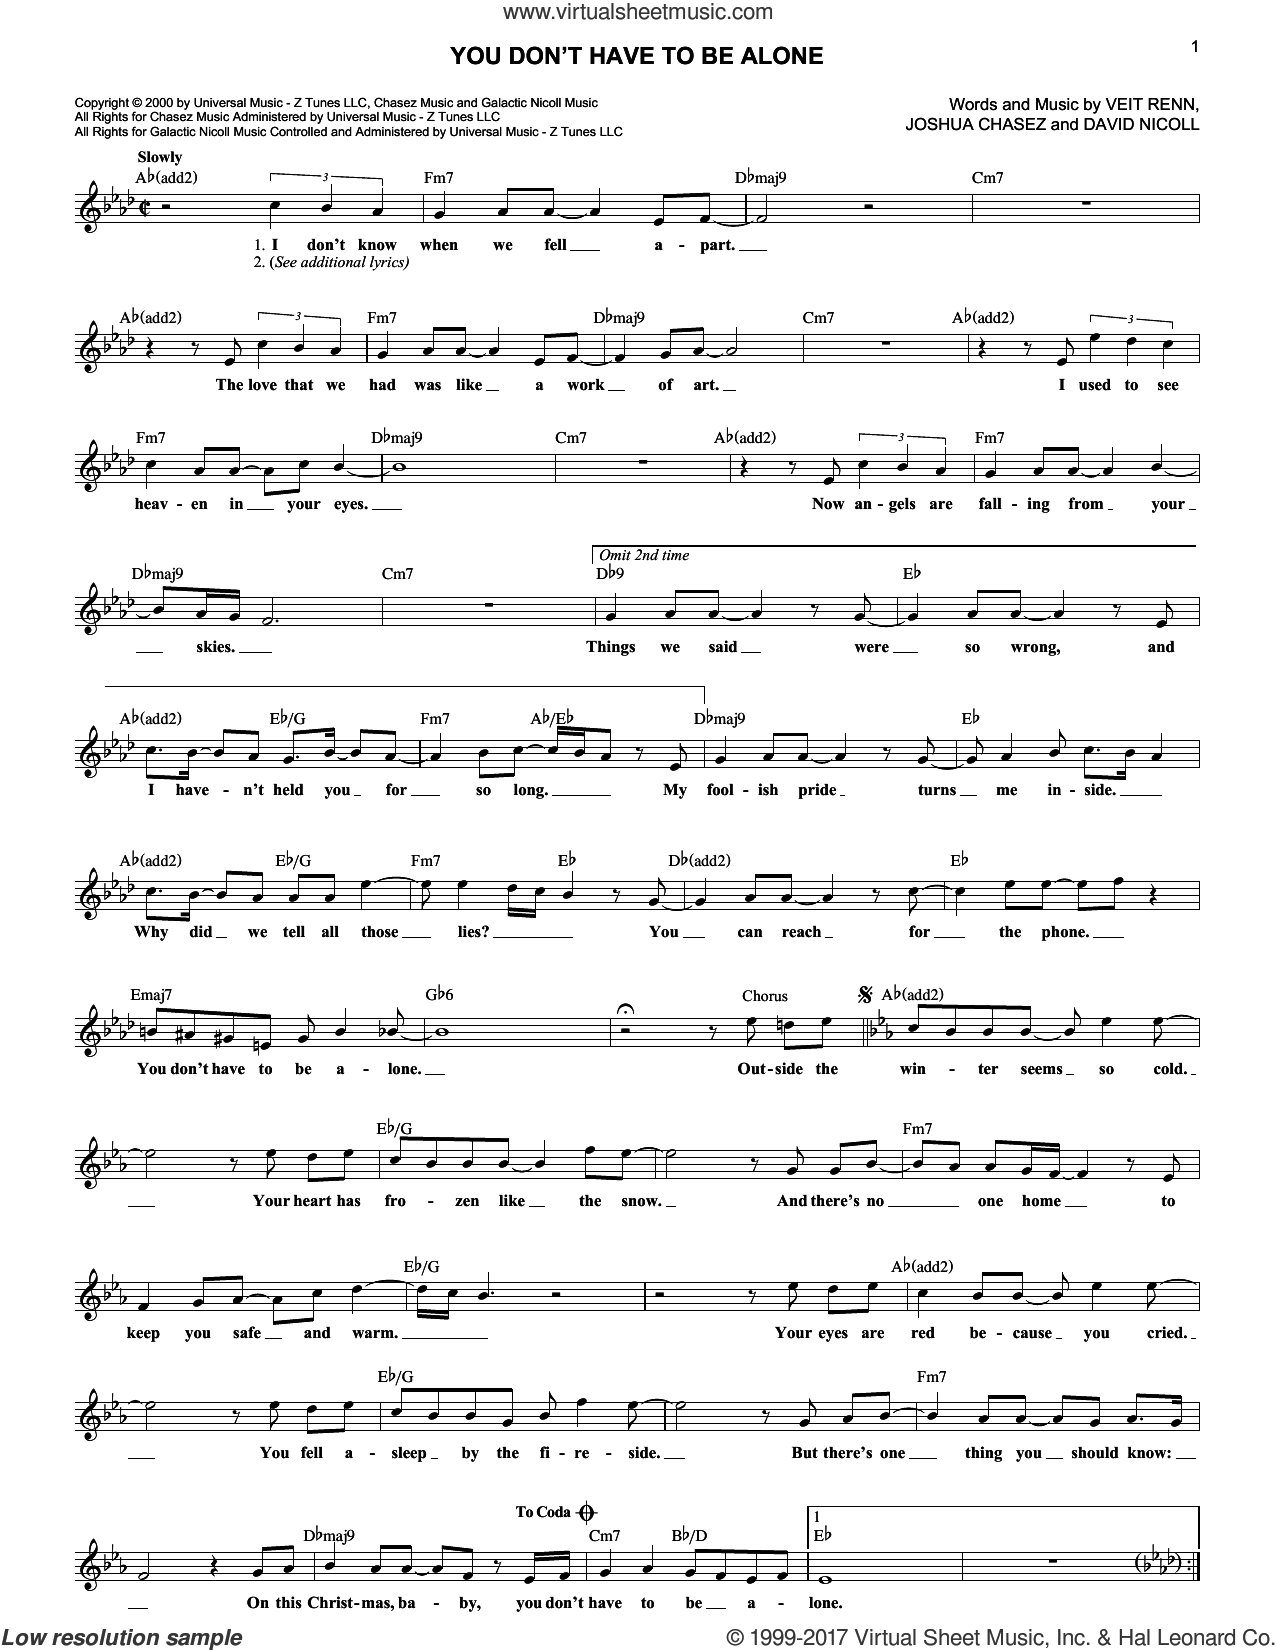 You Don't Have To Be Alone sheet music for voice and other instruments (fake book) by Veit Renn. Score Image Preview.